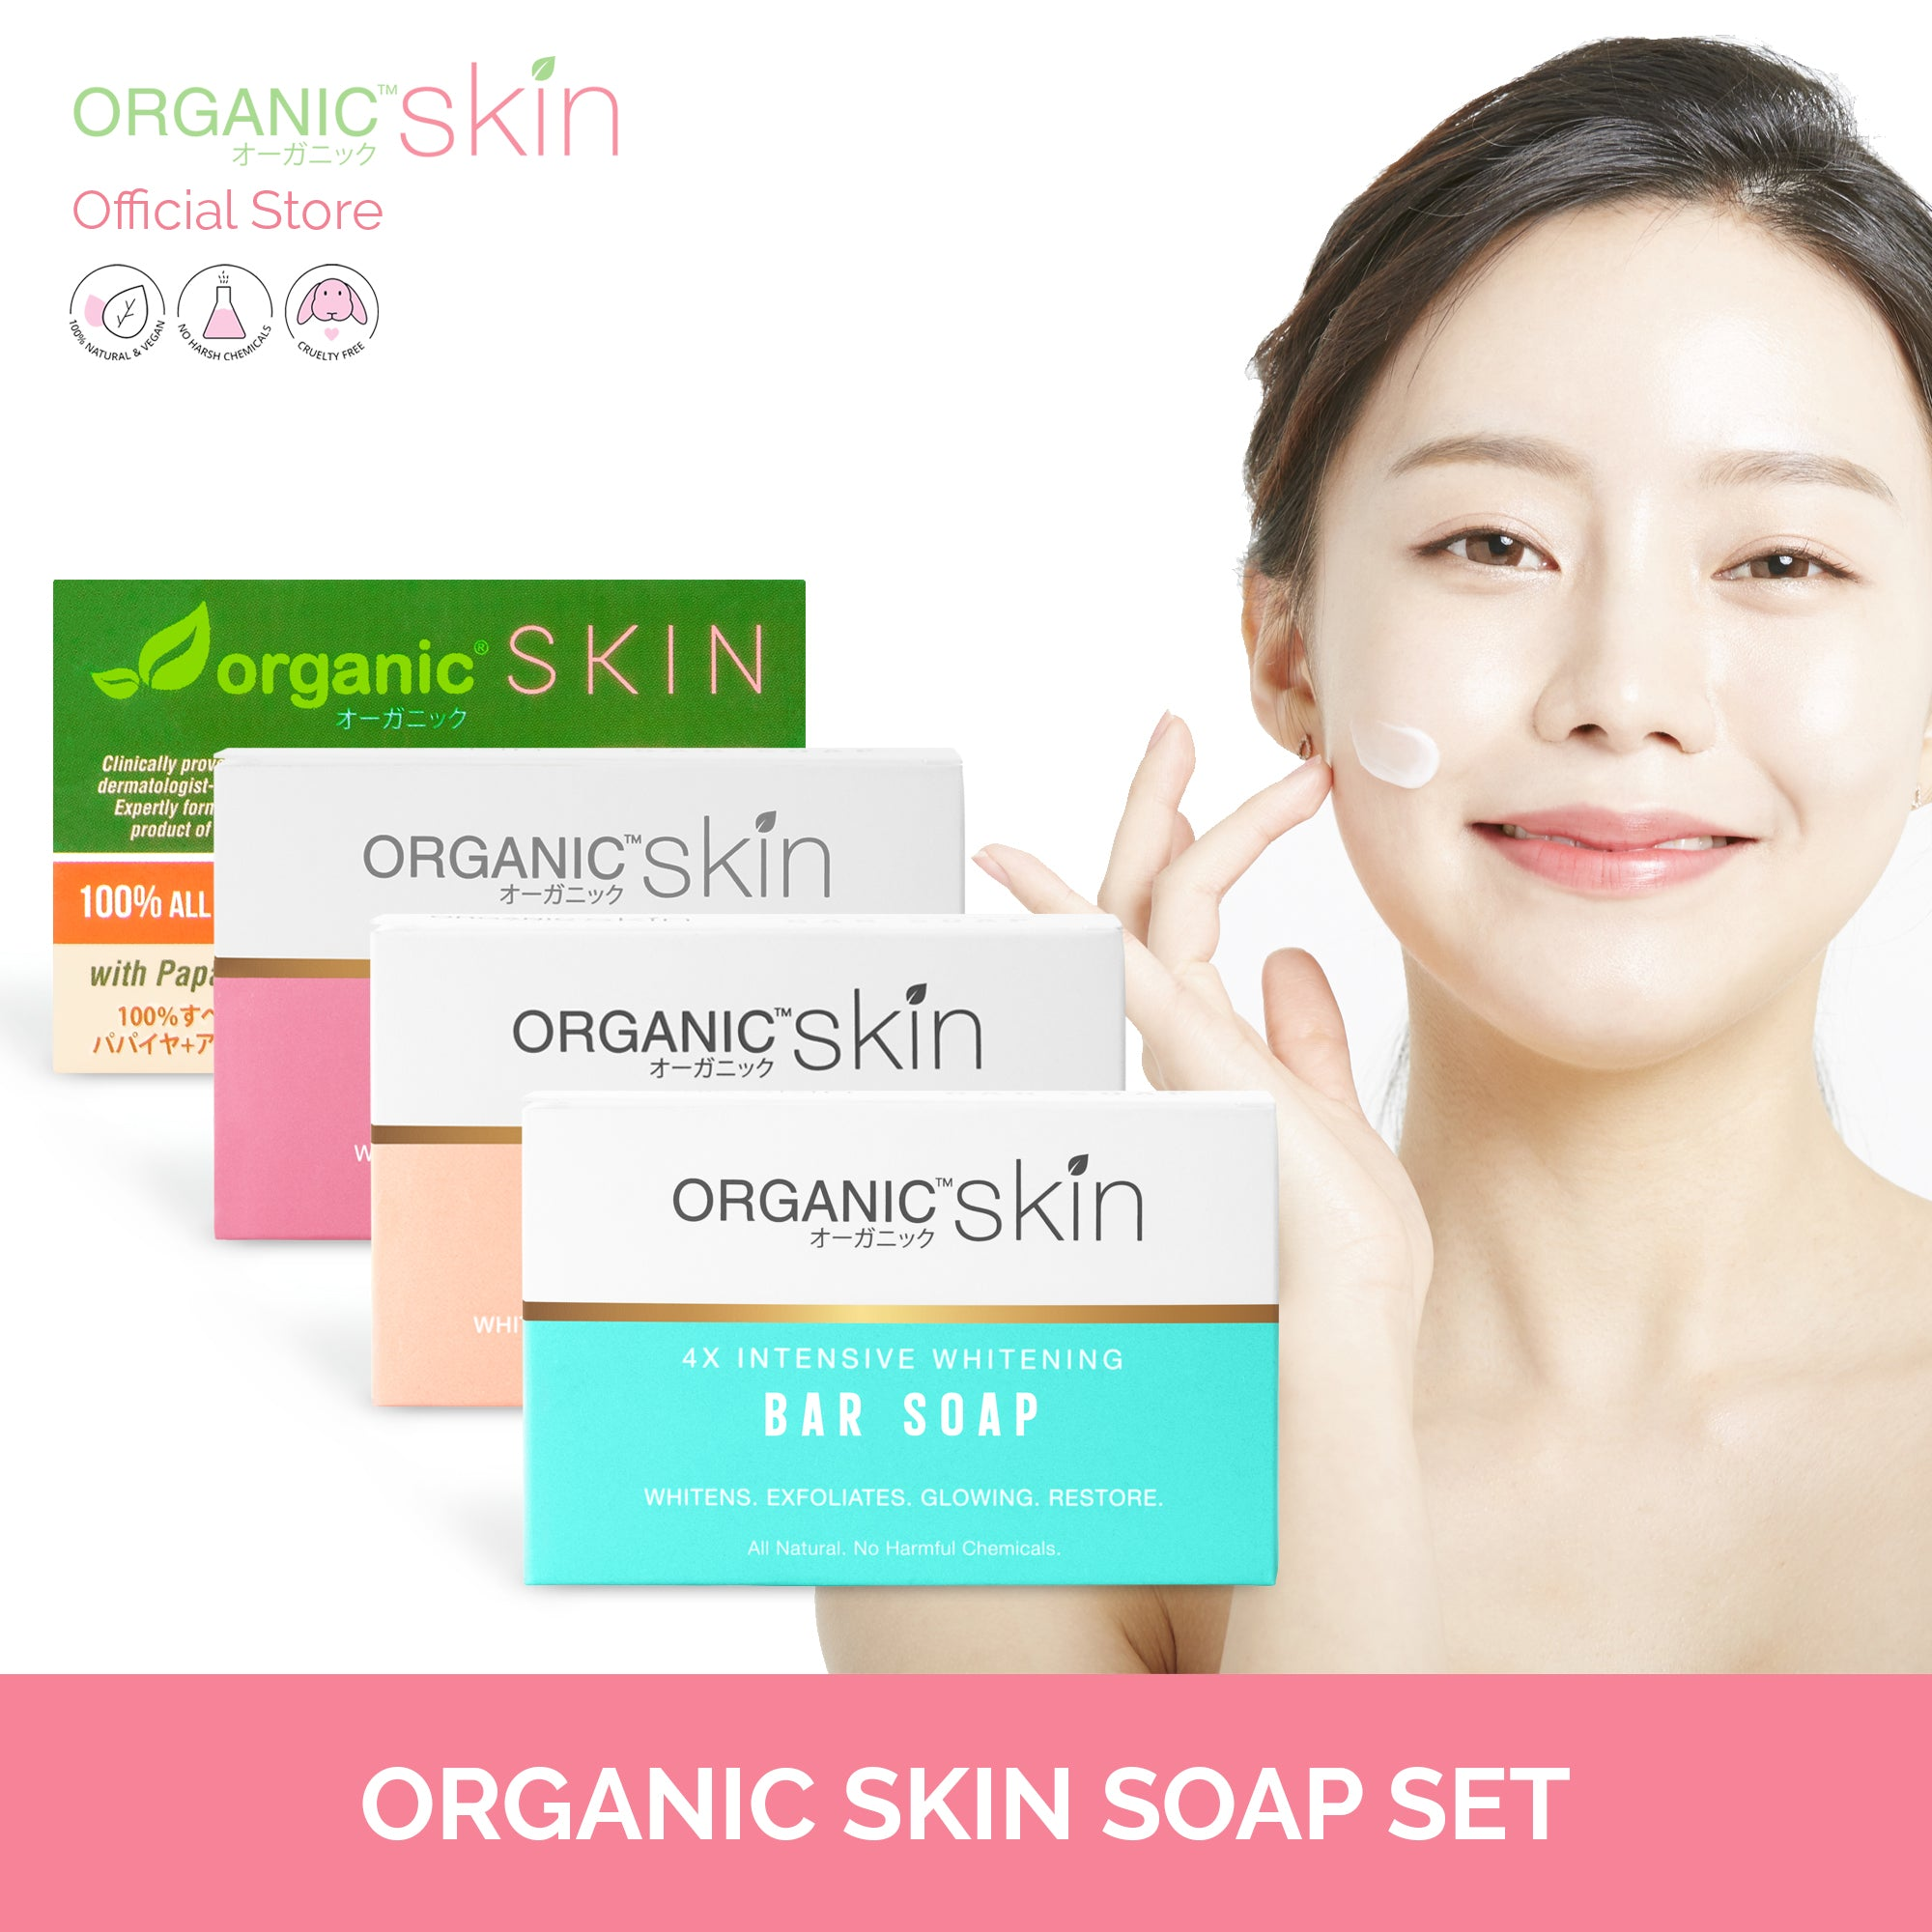 Organic Skin Japan Soap Set 4x Whitening, Anti-Aging, Anti-Acne, All-Natural Soap Set (65g each)